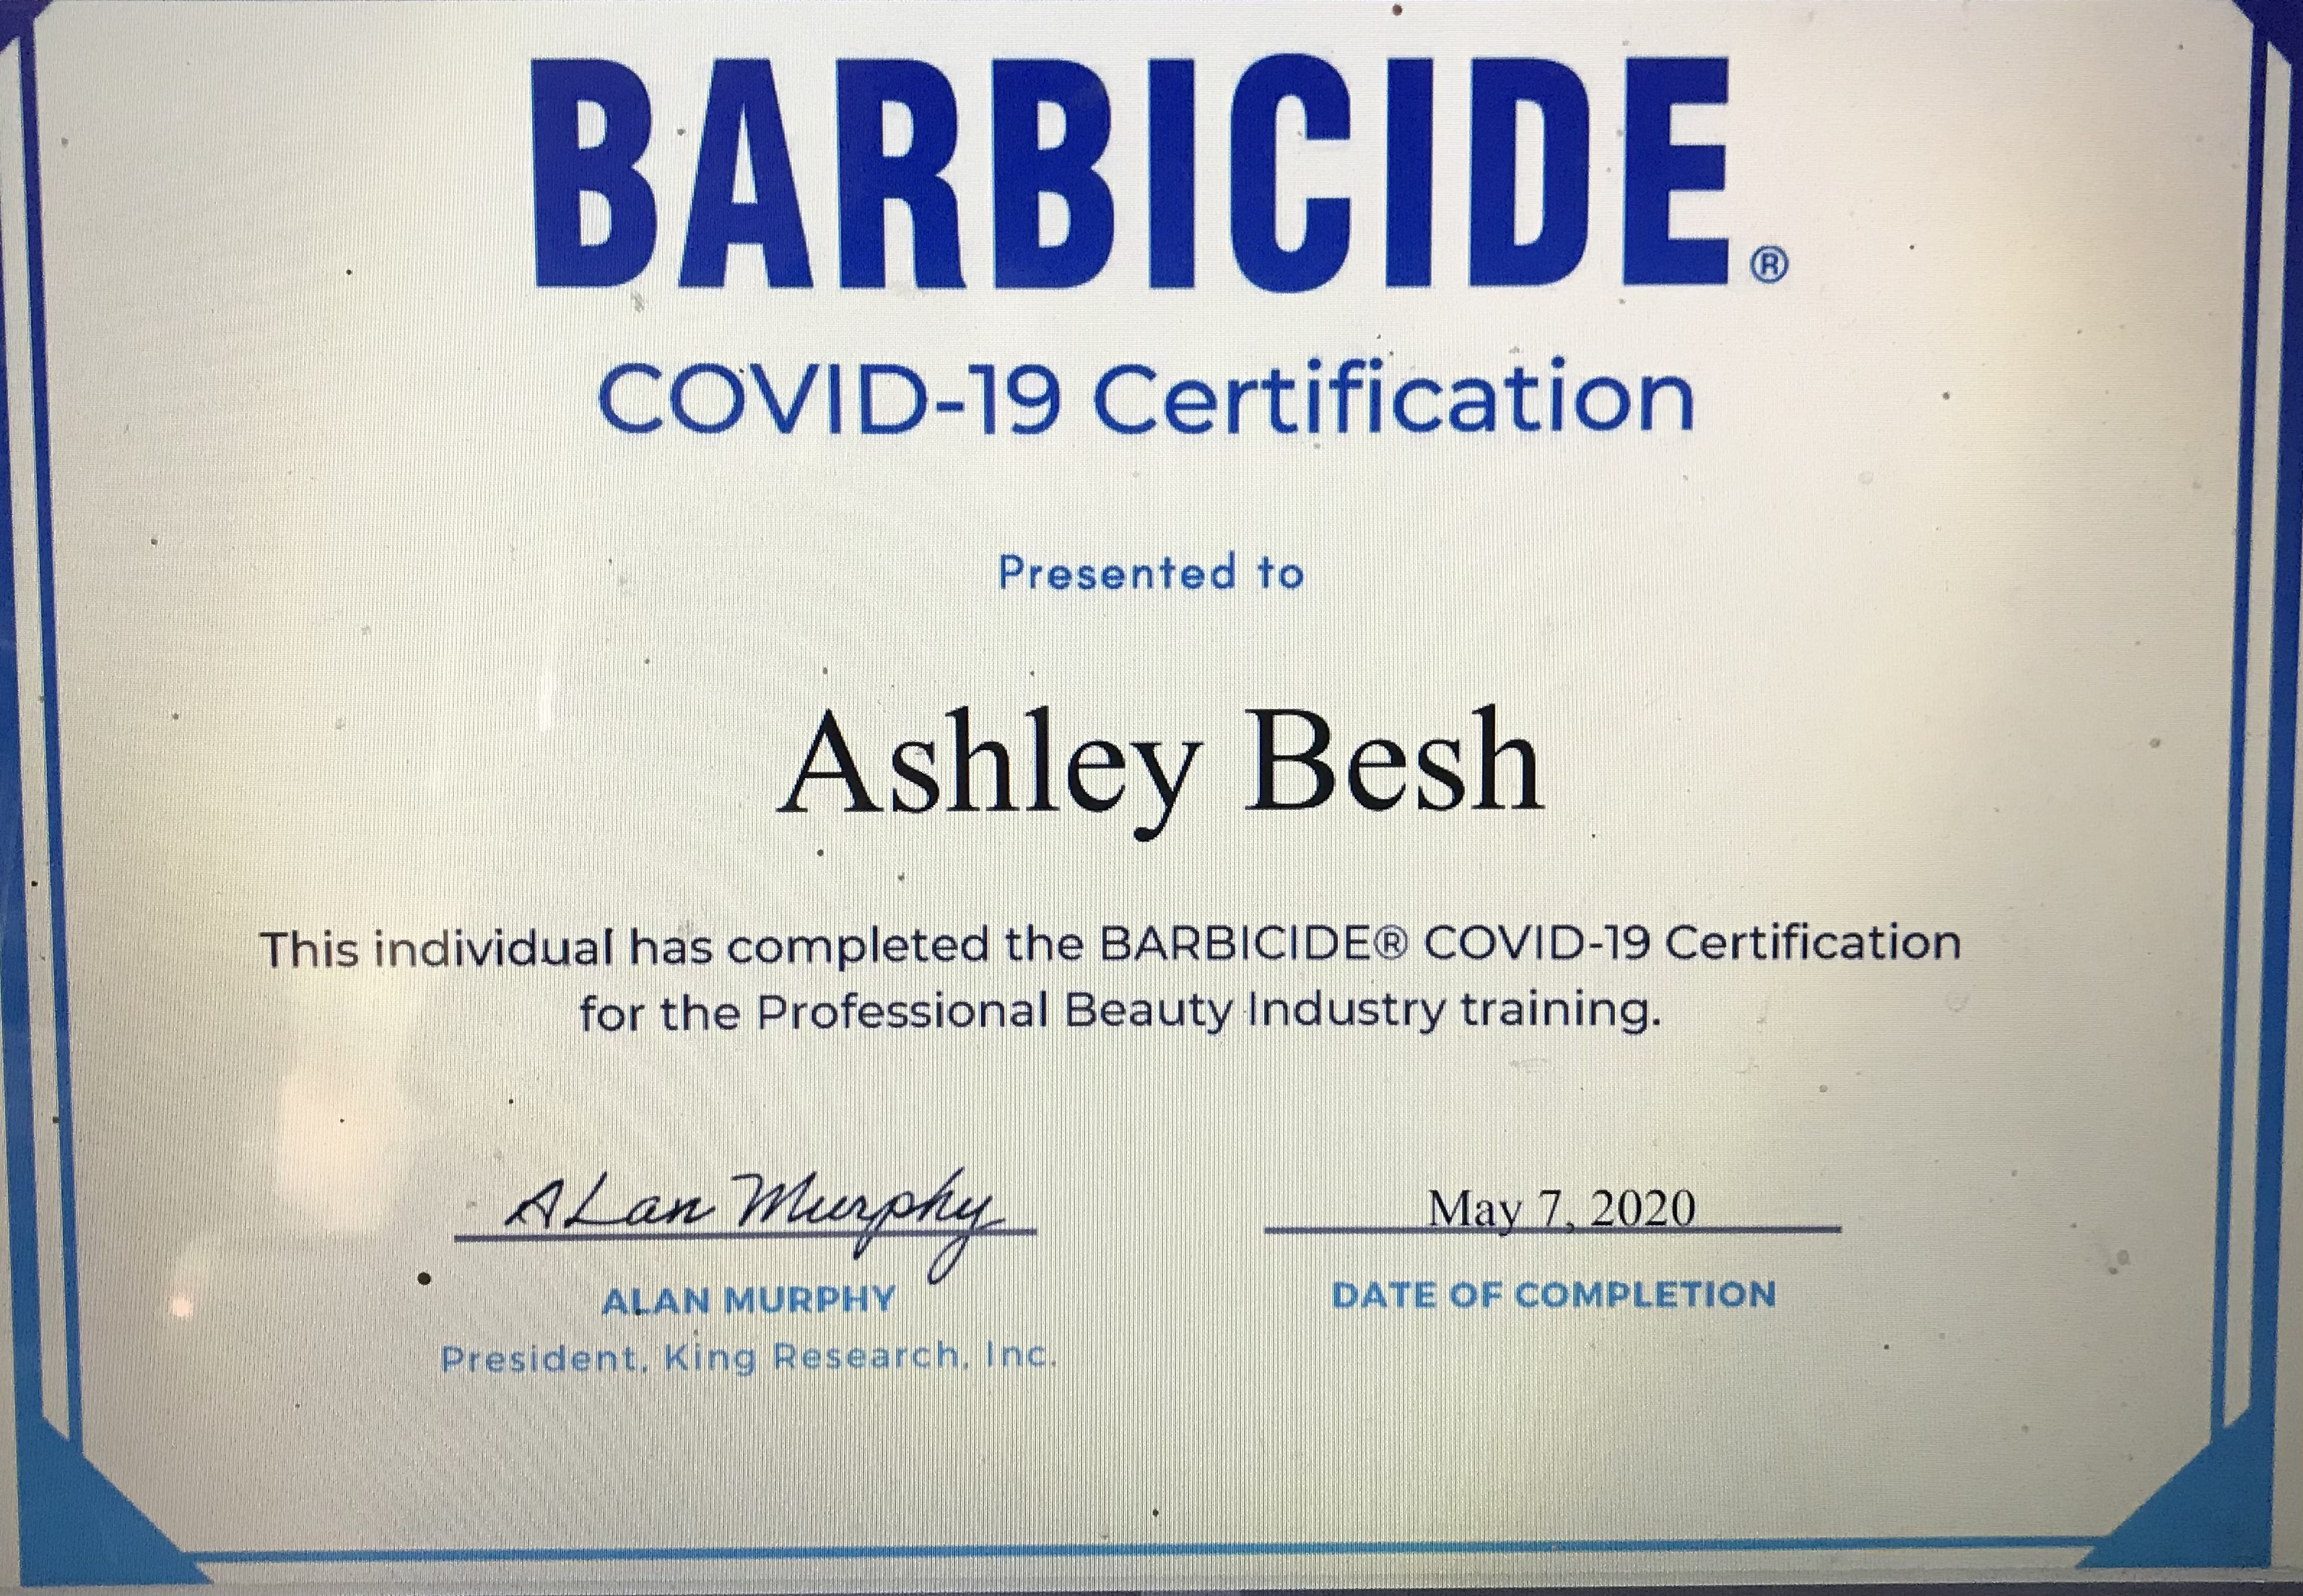 BARBICIDE COVID-19 Safety Certification